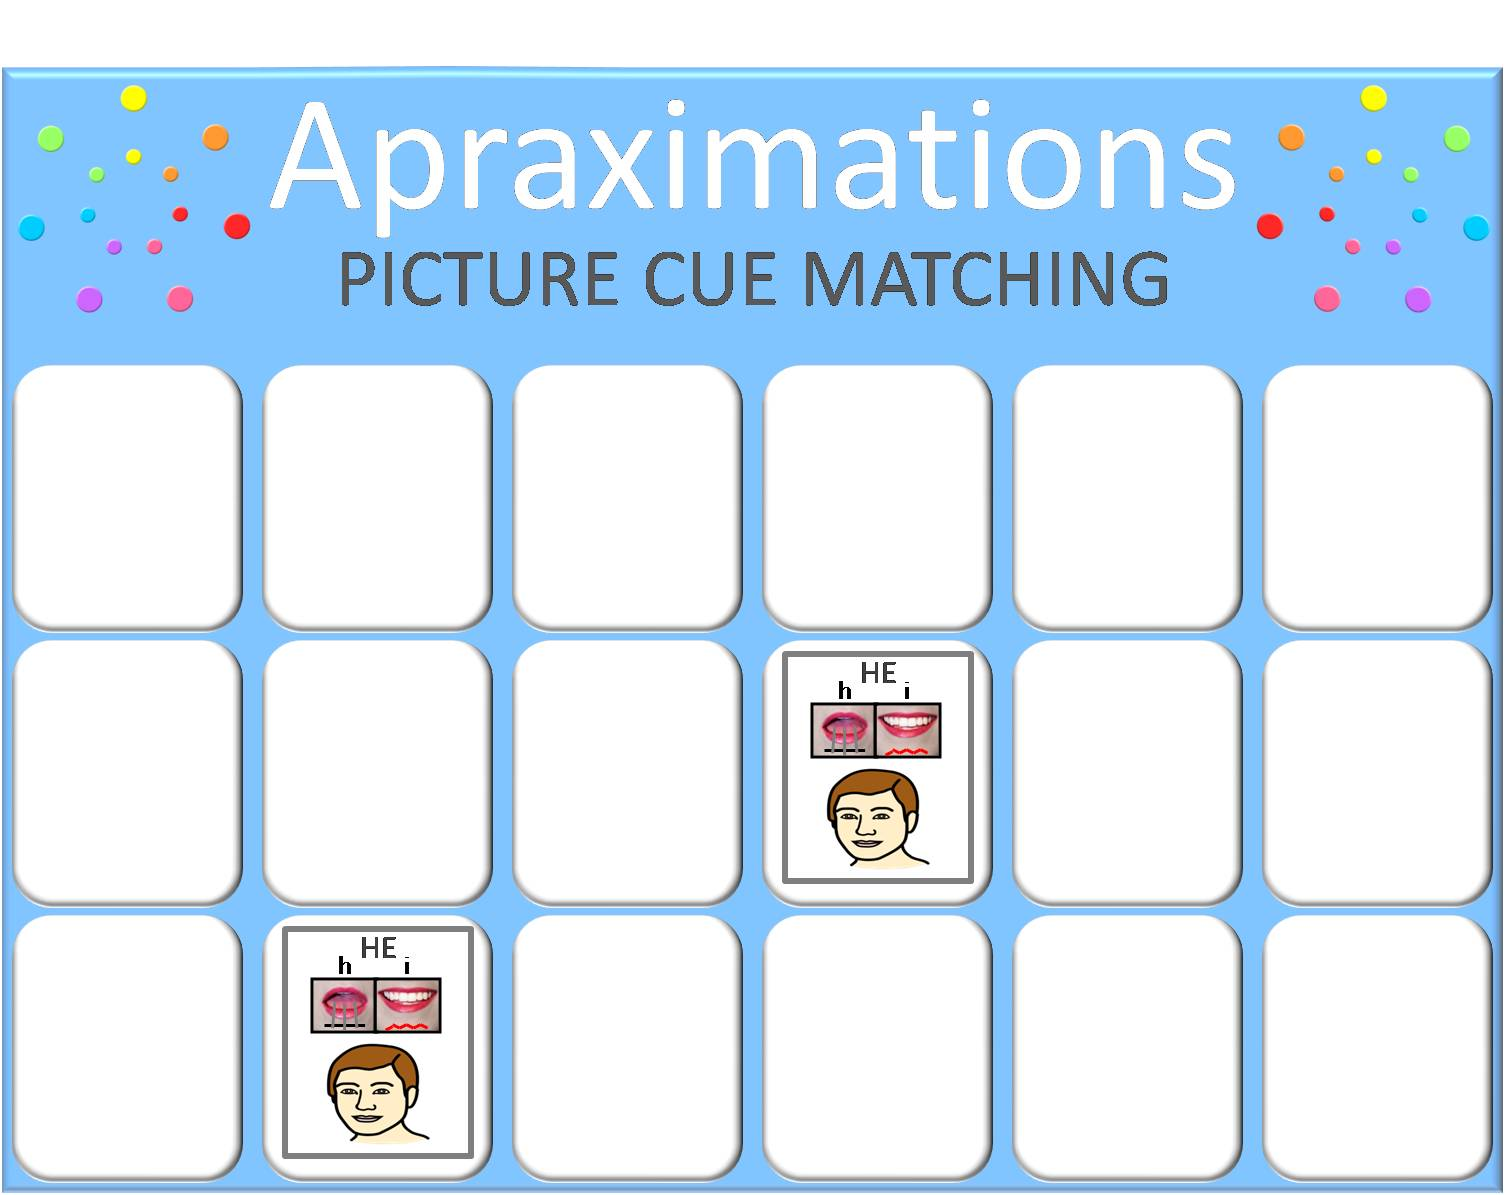 apraximations pic11